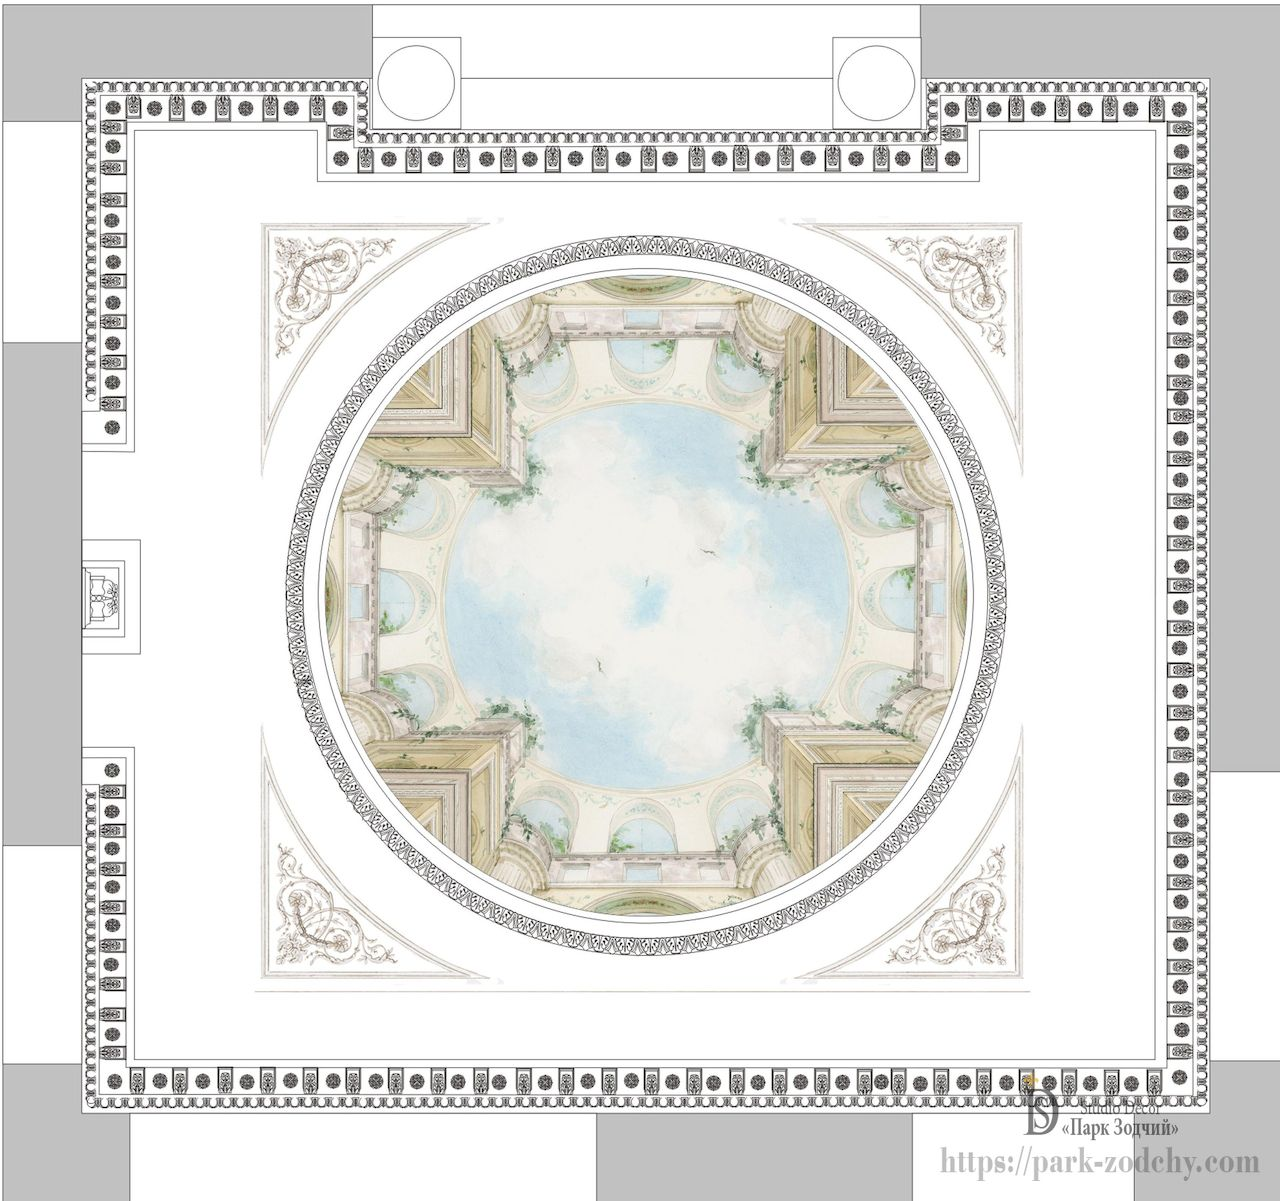 The project of molding and painting the ceiling